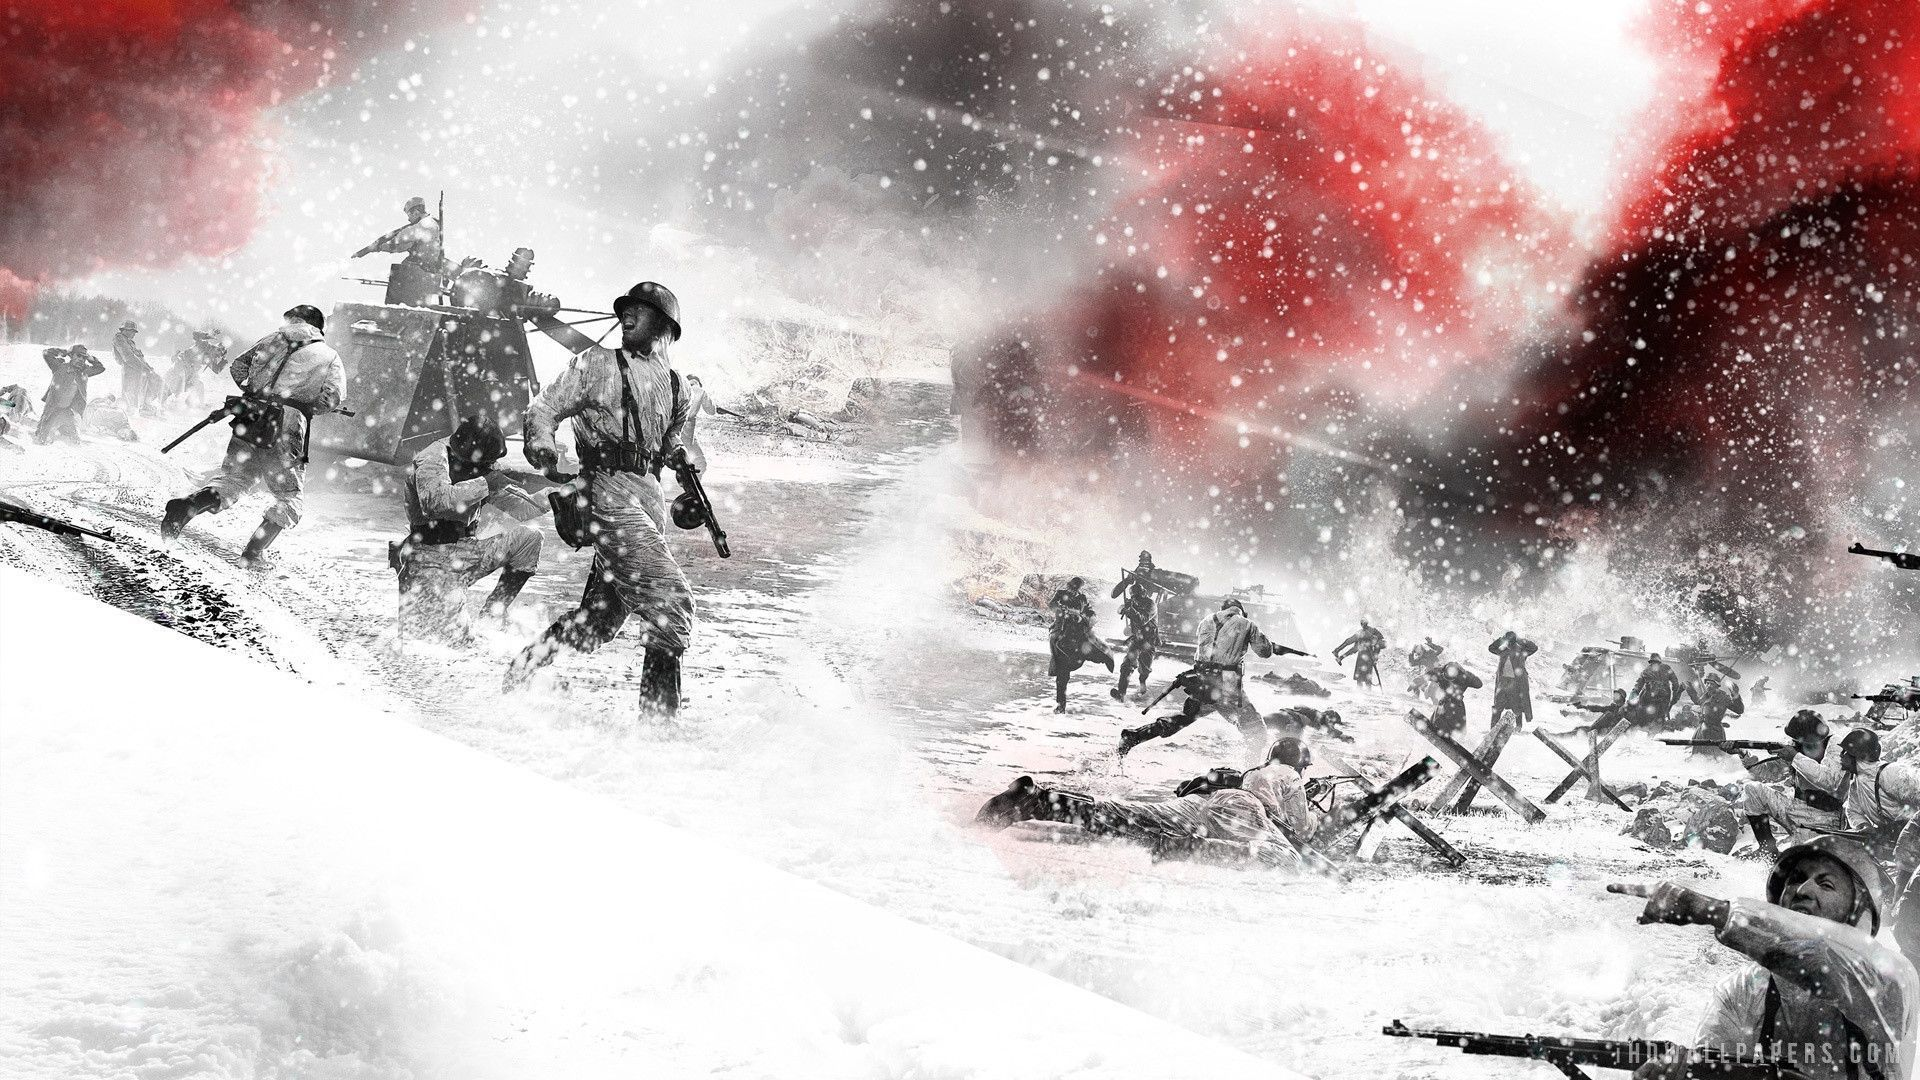 Company of Heroes desktop wallpapers file Mod DB